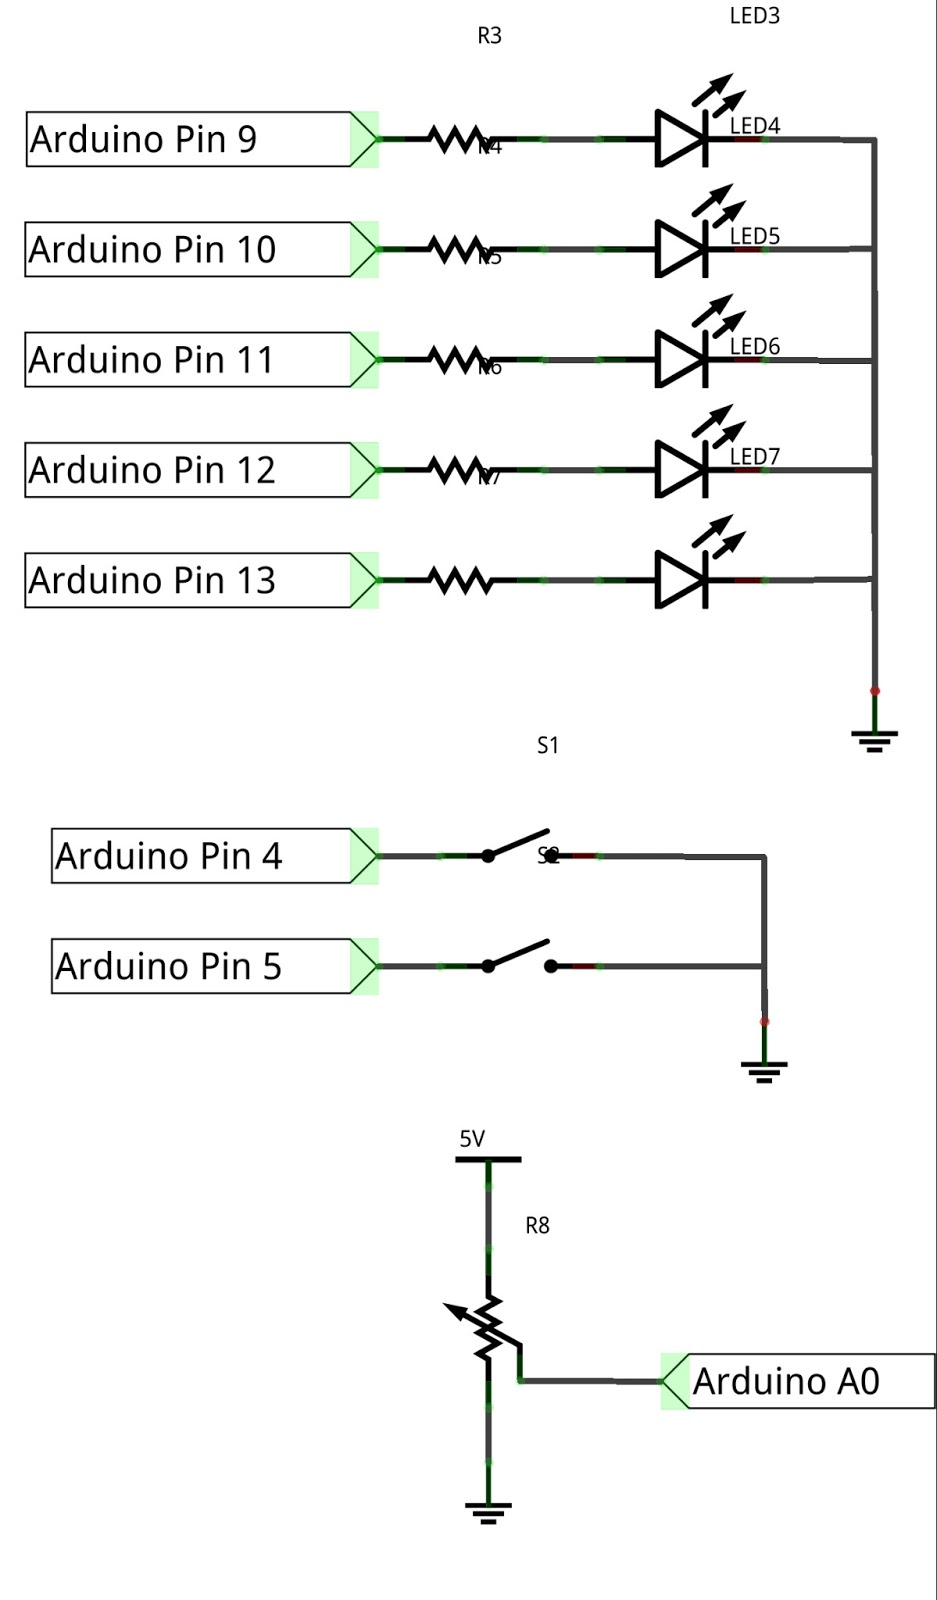 Thermistor and arduino